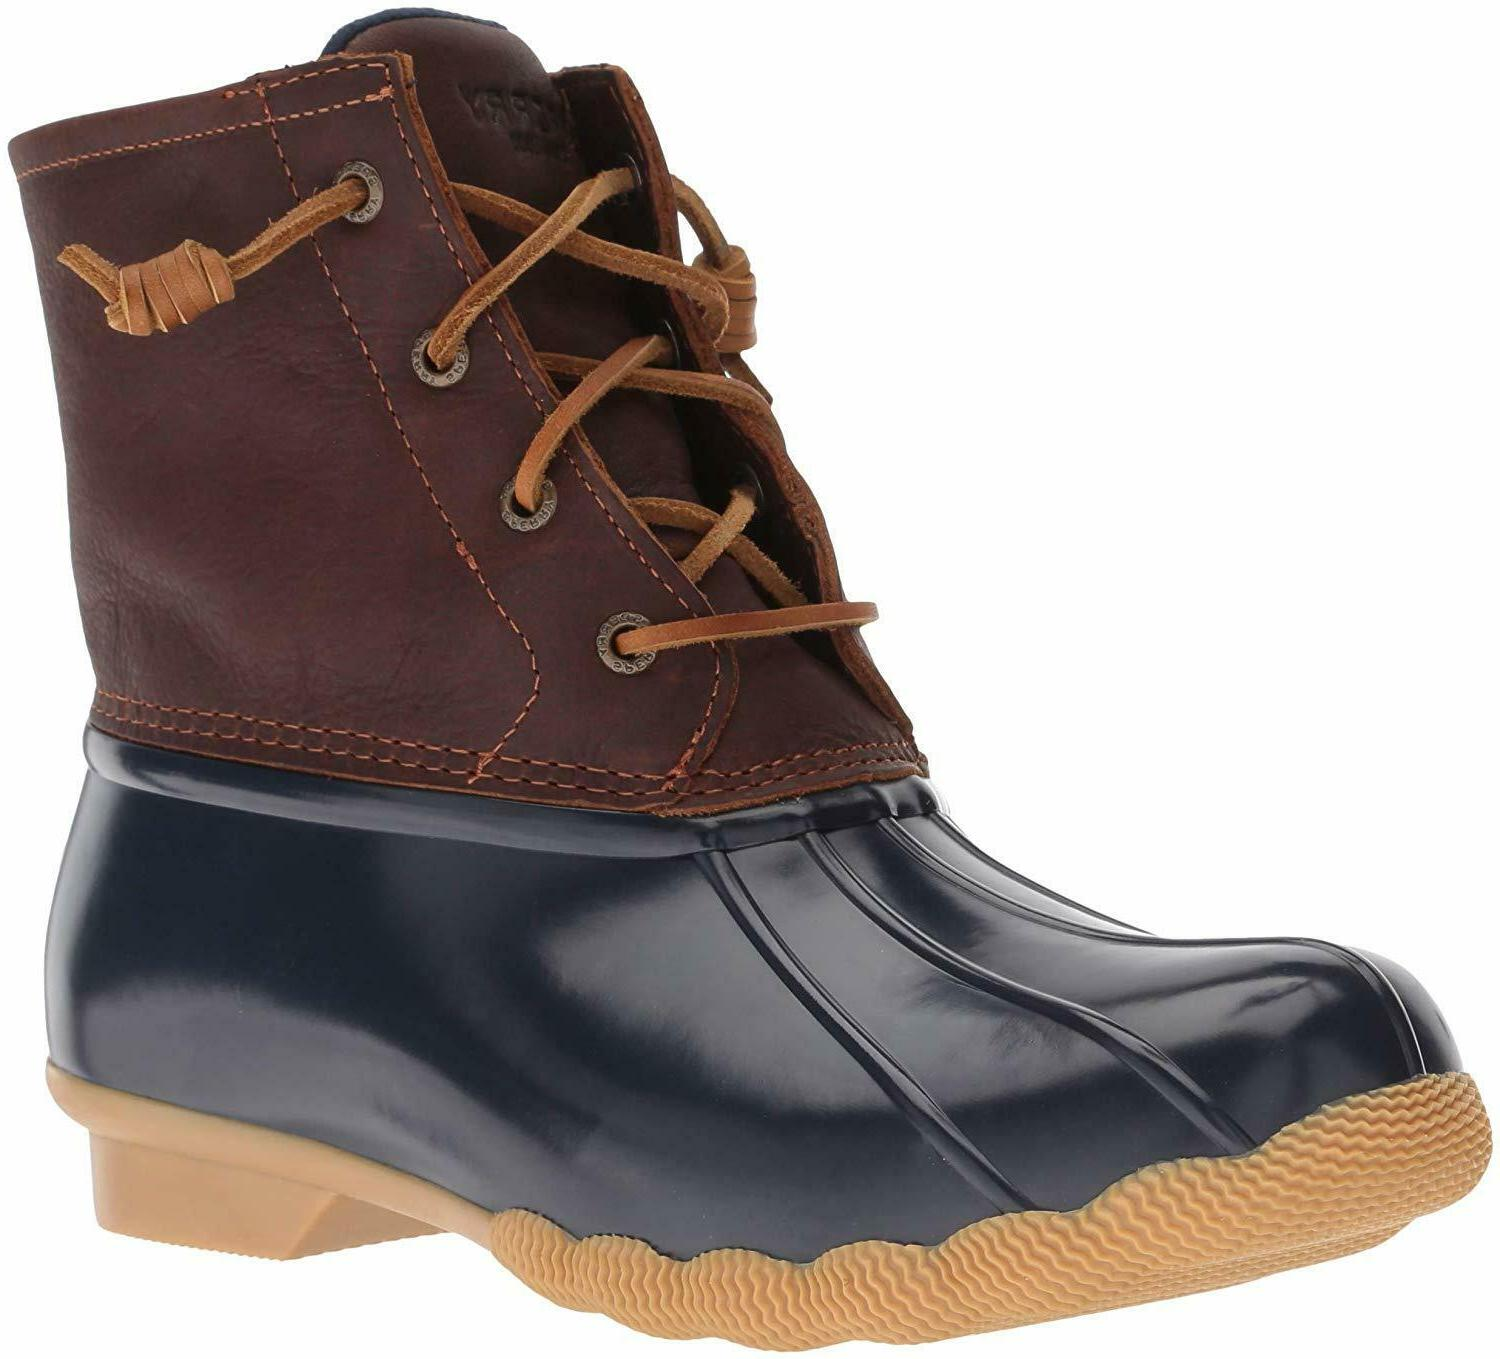 sperry women s saltwater rain boot